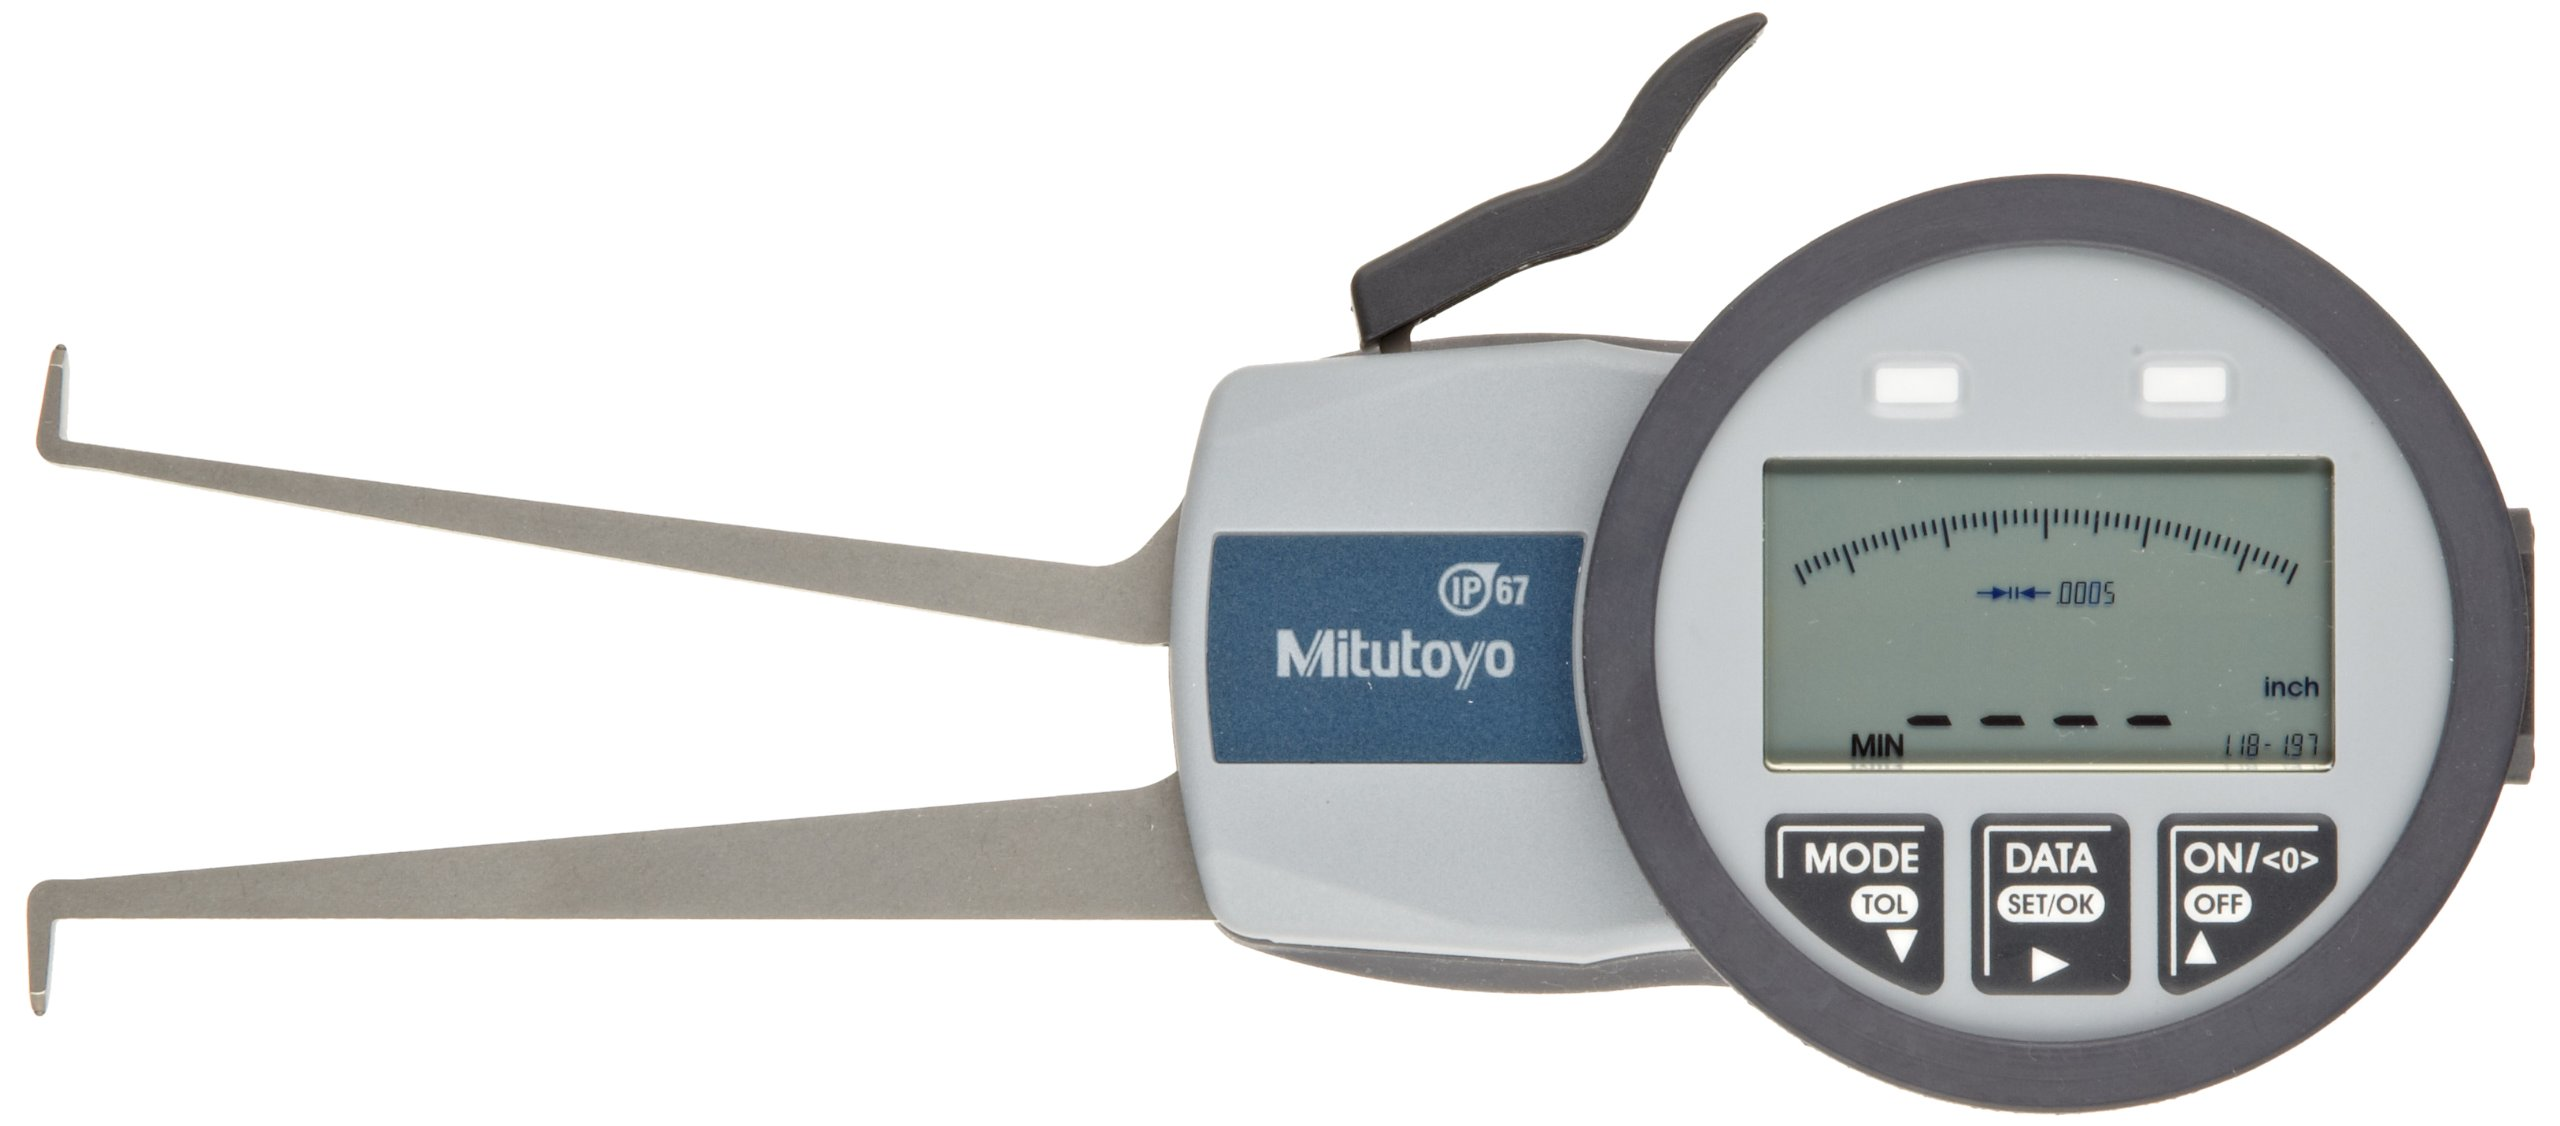 Mitutoyo 209-554 Caliper Gauge, Inch/Metric, Pointed Jaw, 1.18-1.97'' Range, +/-0.0015'' Accuracy, 0.0005'' Resolution, Meets IP63/IP67 Specifications